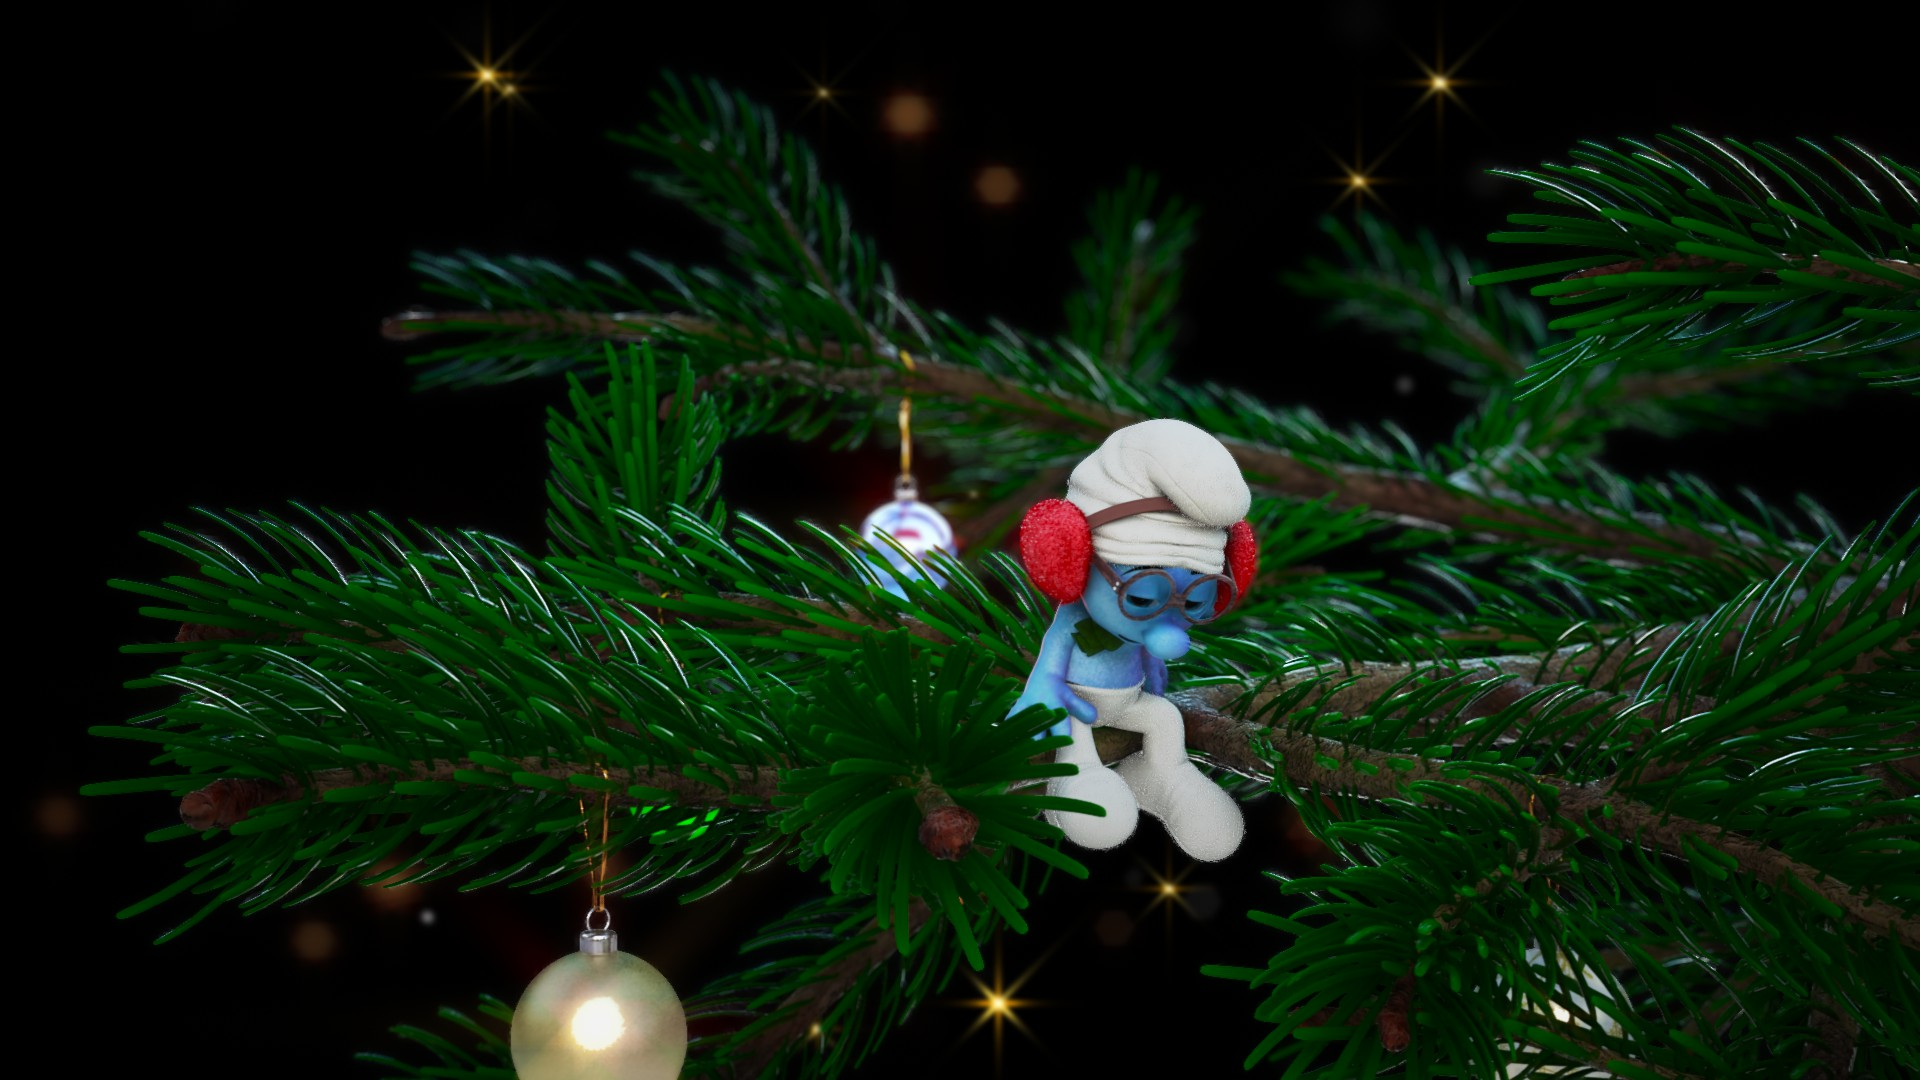 The Christmas Smurf